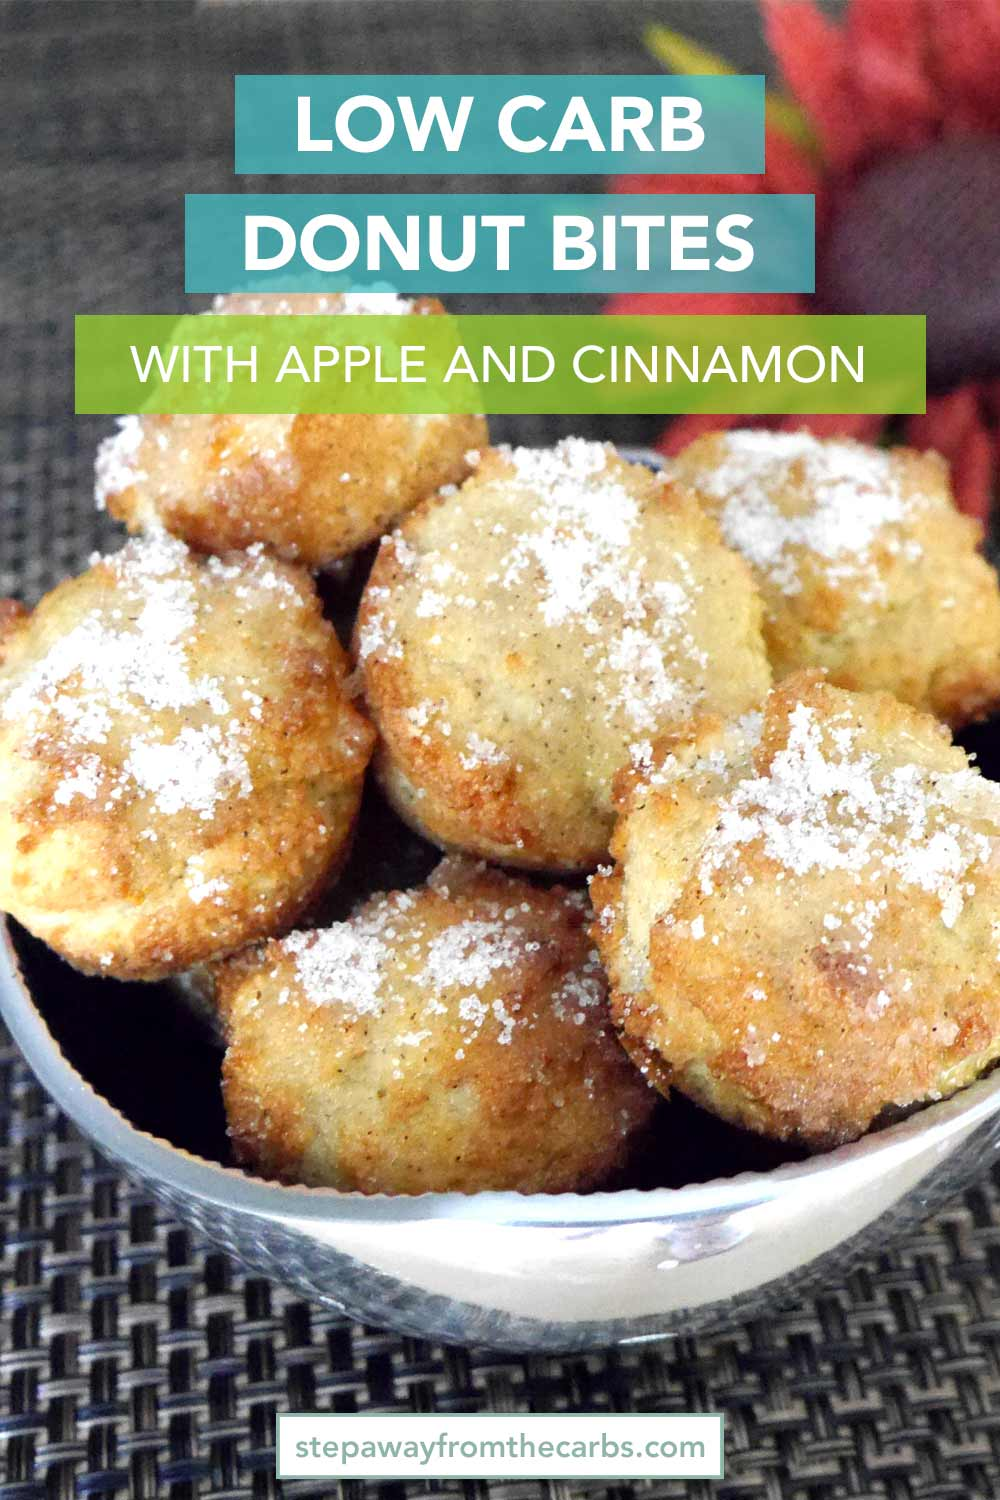 Low Carb Donut Bites with Apple and Cinnamon - sugar free, keto, and gluten free recipe